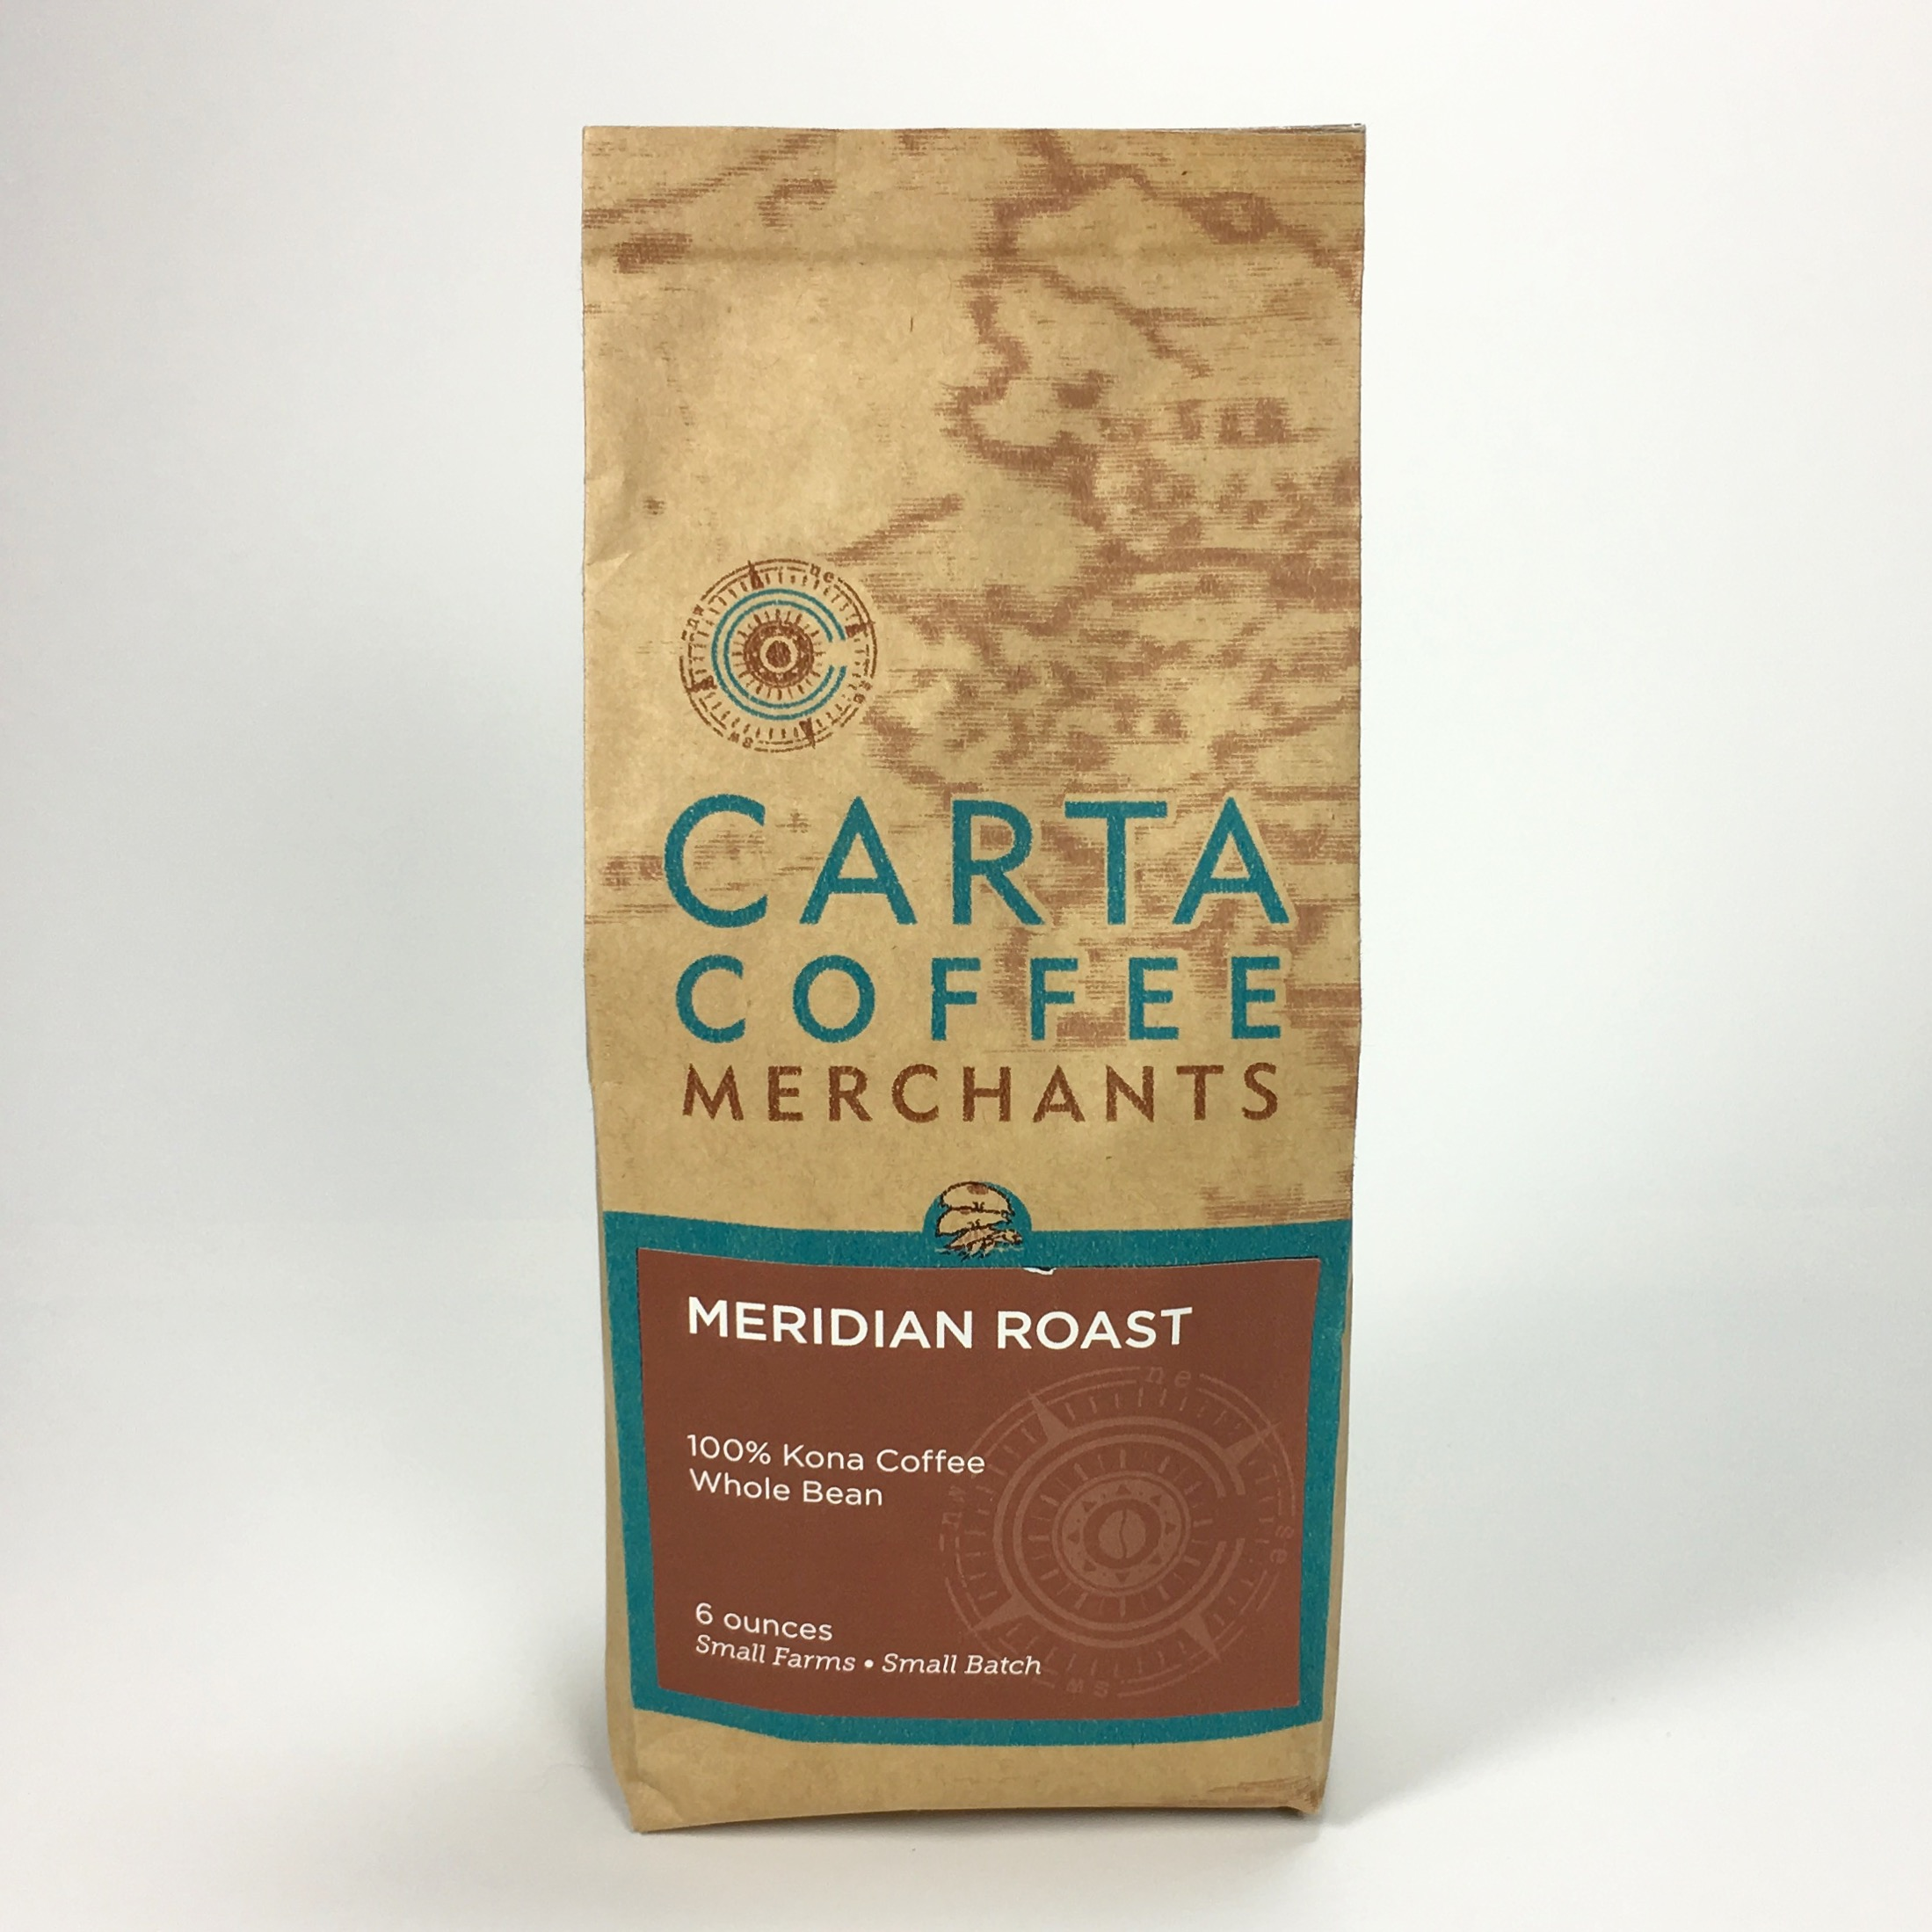 Carta Coffee Merchants Meridian Roast (Light) 100% Kona